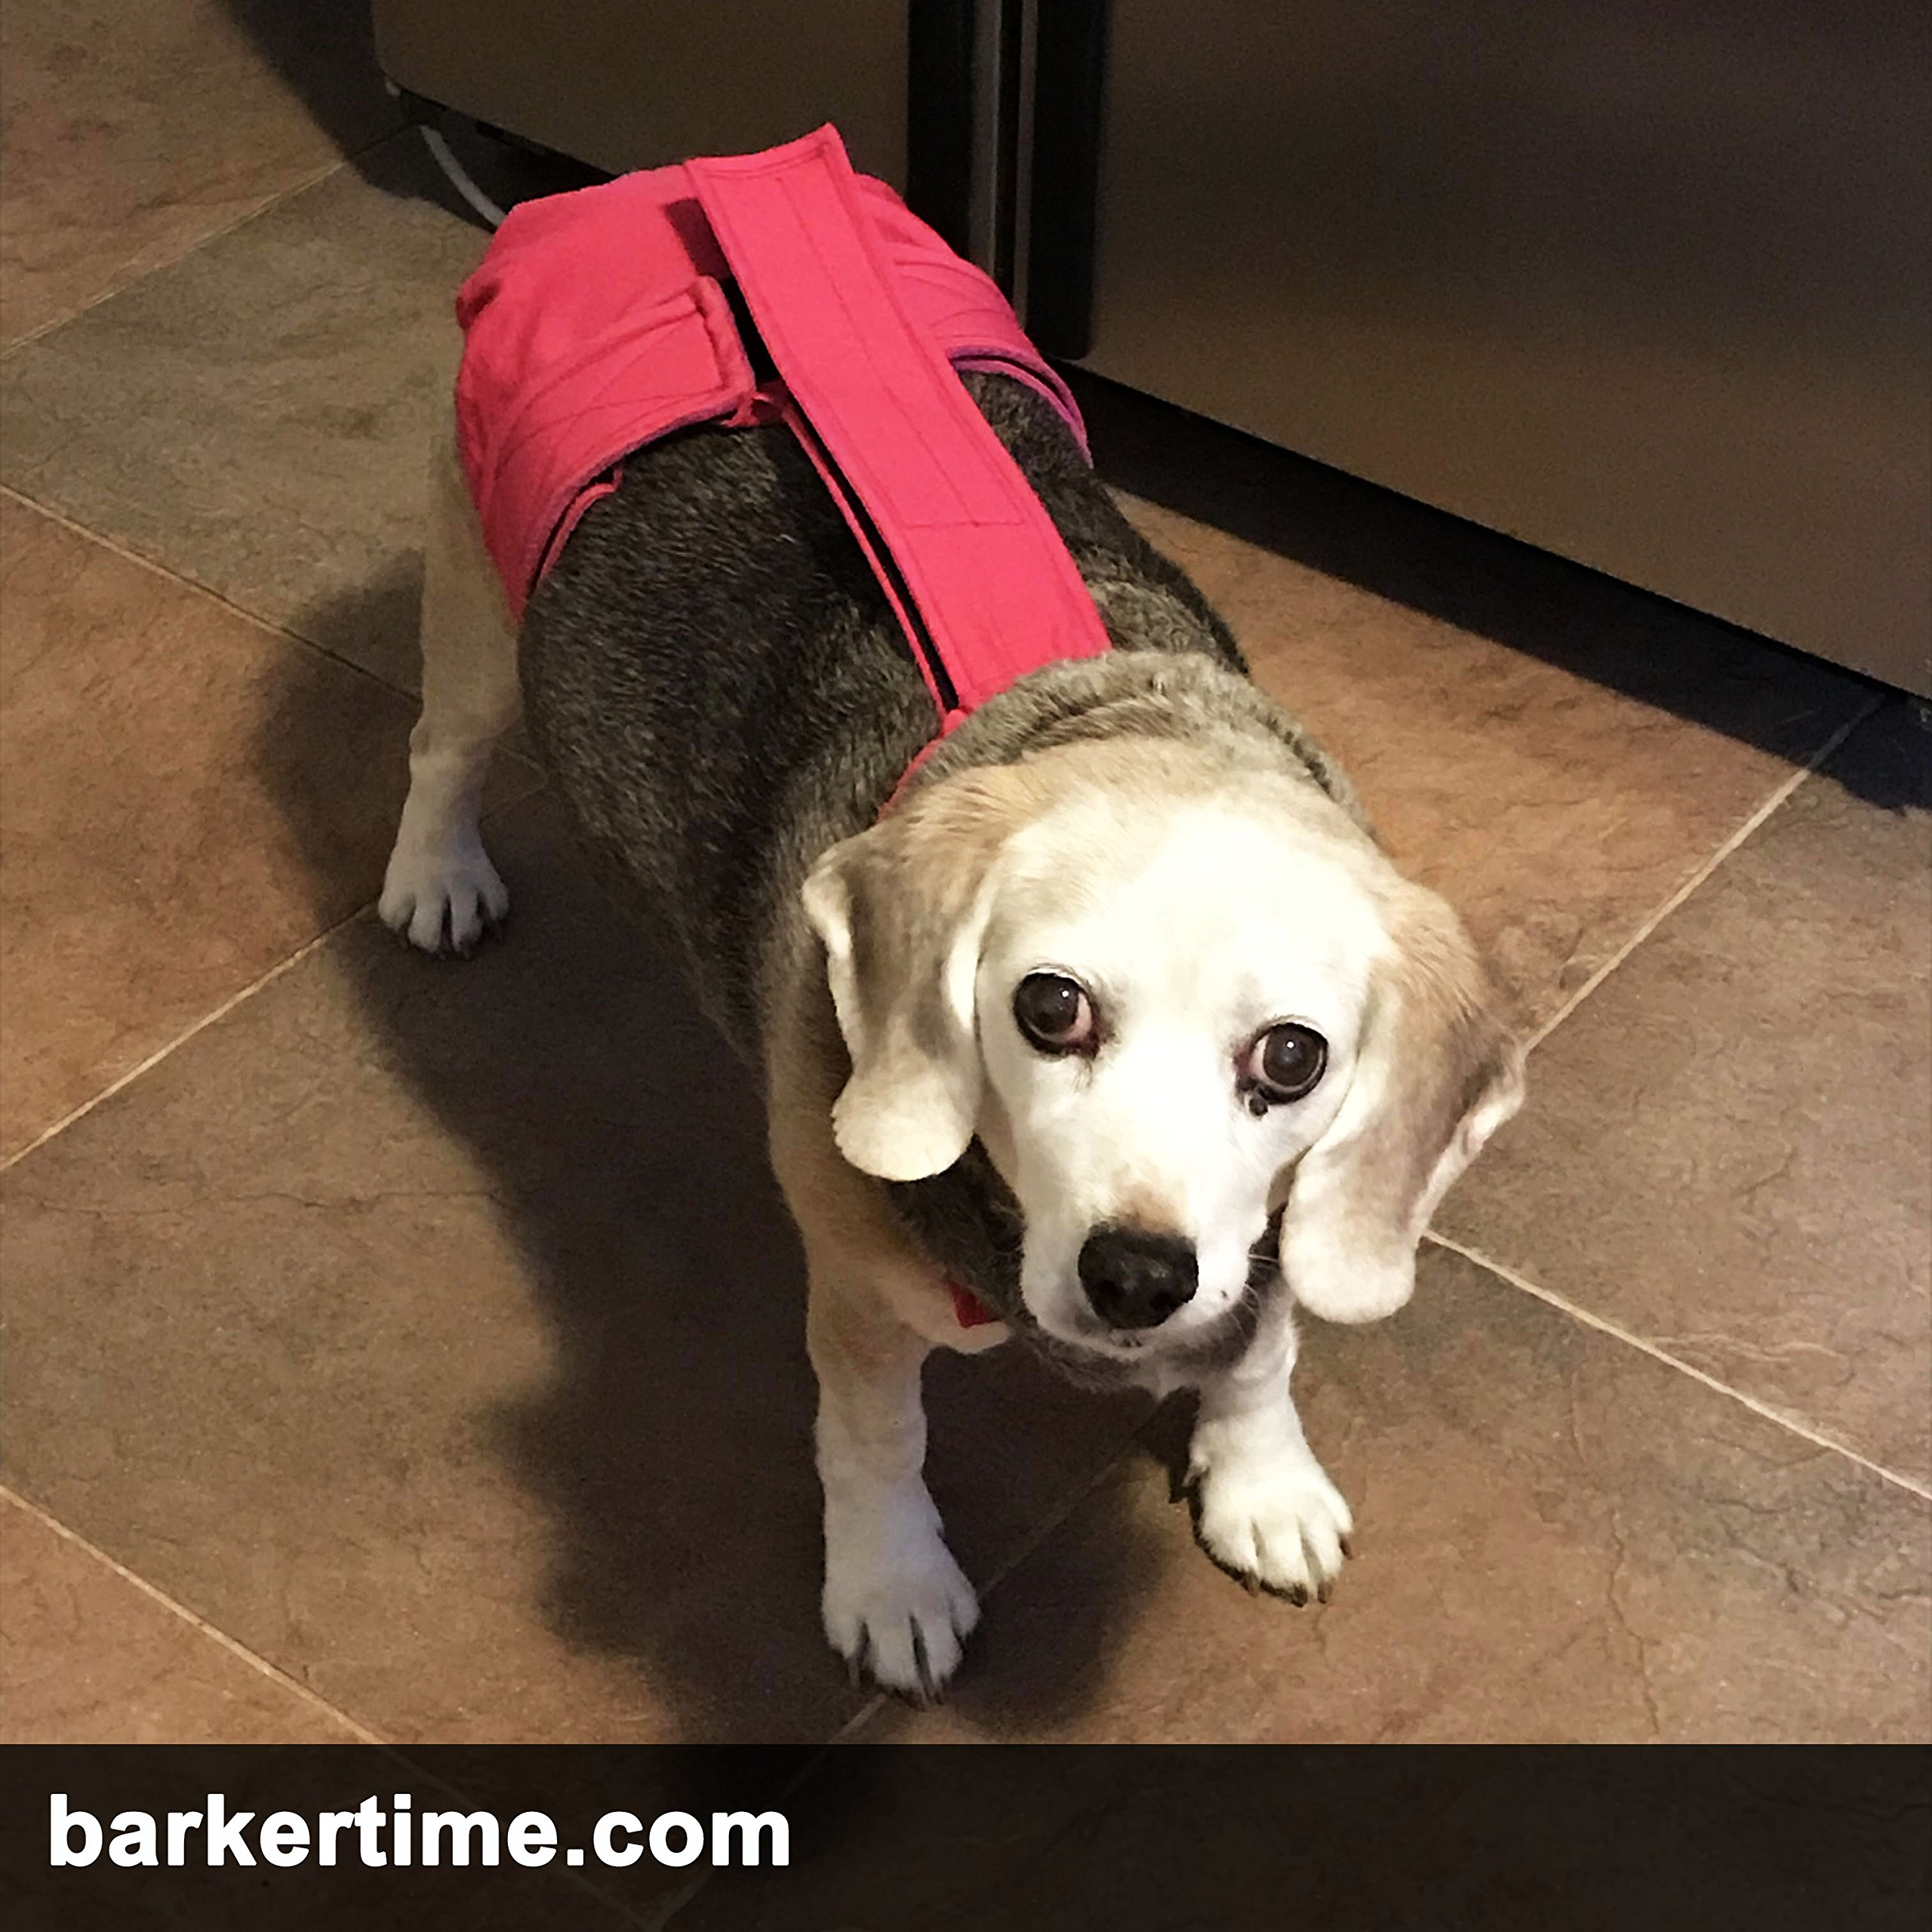 Barkertime Dog Diaper Overall - Made in USA - Hot Pink Escape-Proof Washable Dog Diaper Overall, XXL, With Tail Hole for Dog Incontinence, Marking, Housetraining and Females in Heat